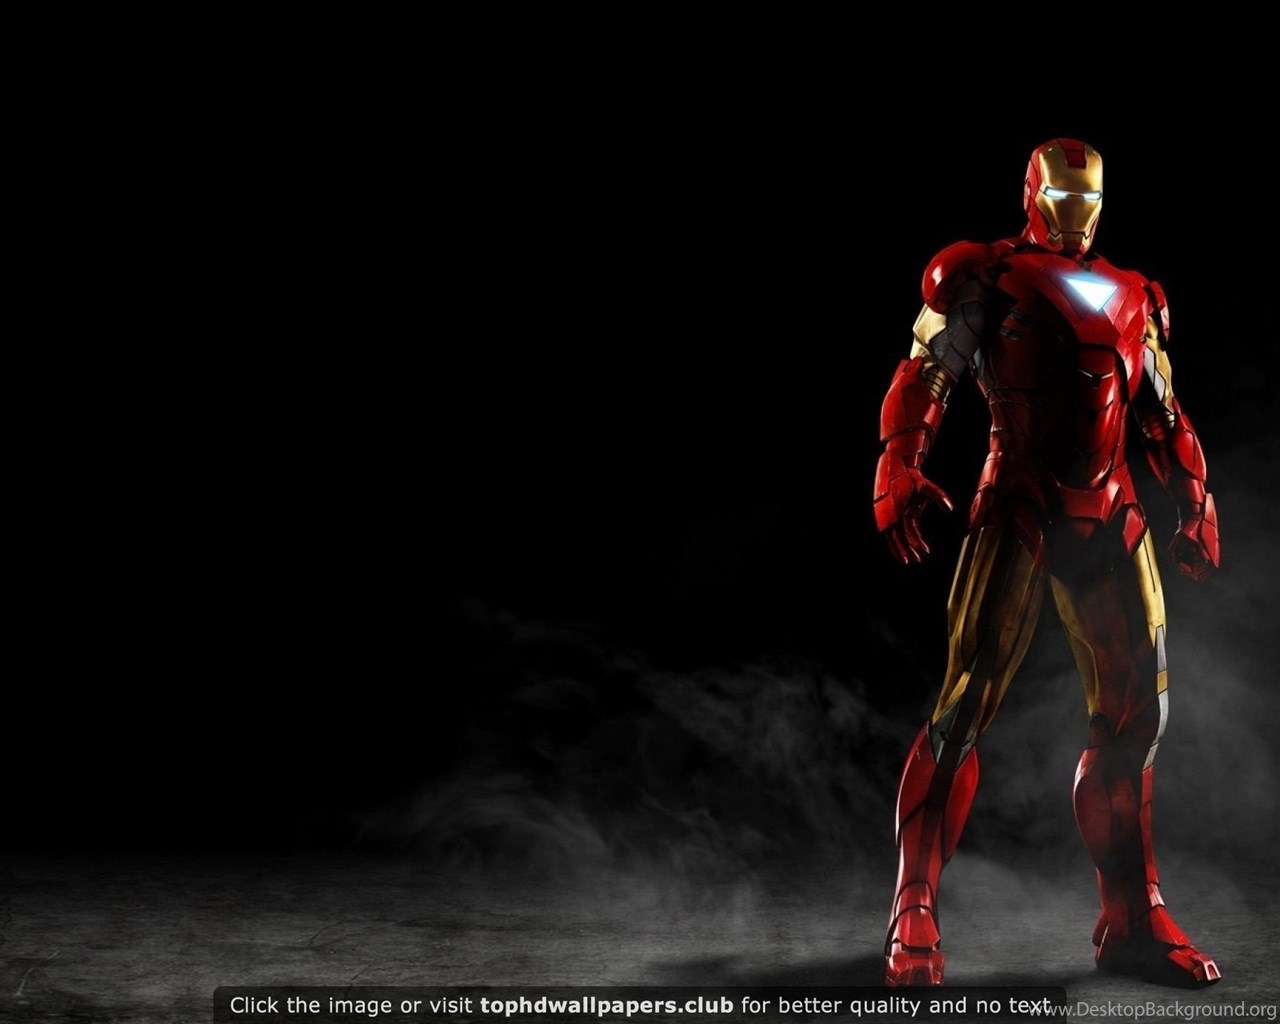 Simple Wallpaper Mac Iron Man - 405471_iron-man-3-wallpapers-hd-4k-or-hd-wallpapers-for-your-pc-mac-or_2560x1440_h  Pictures_1002953.jpg